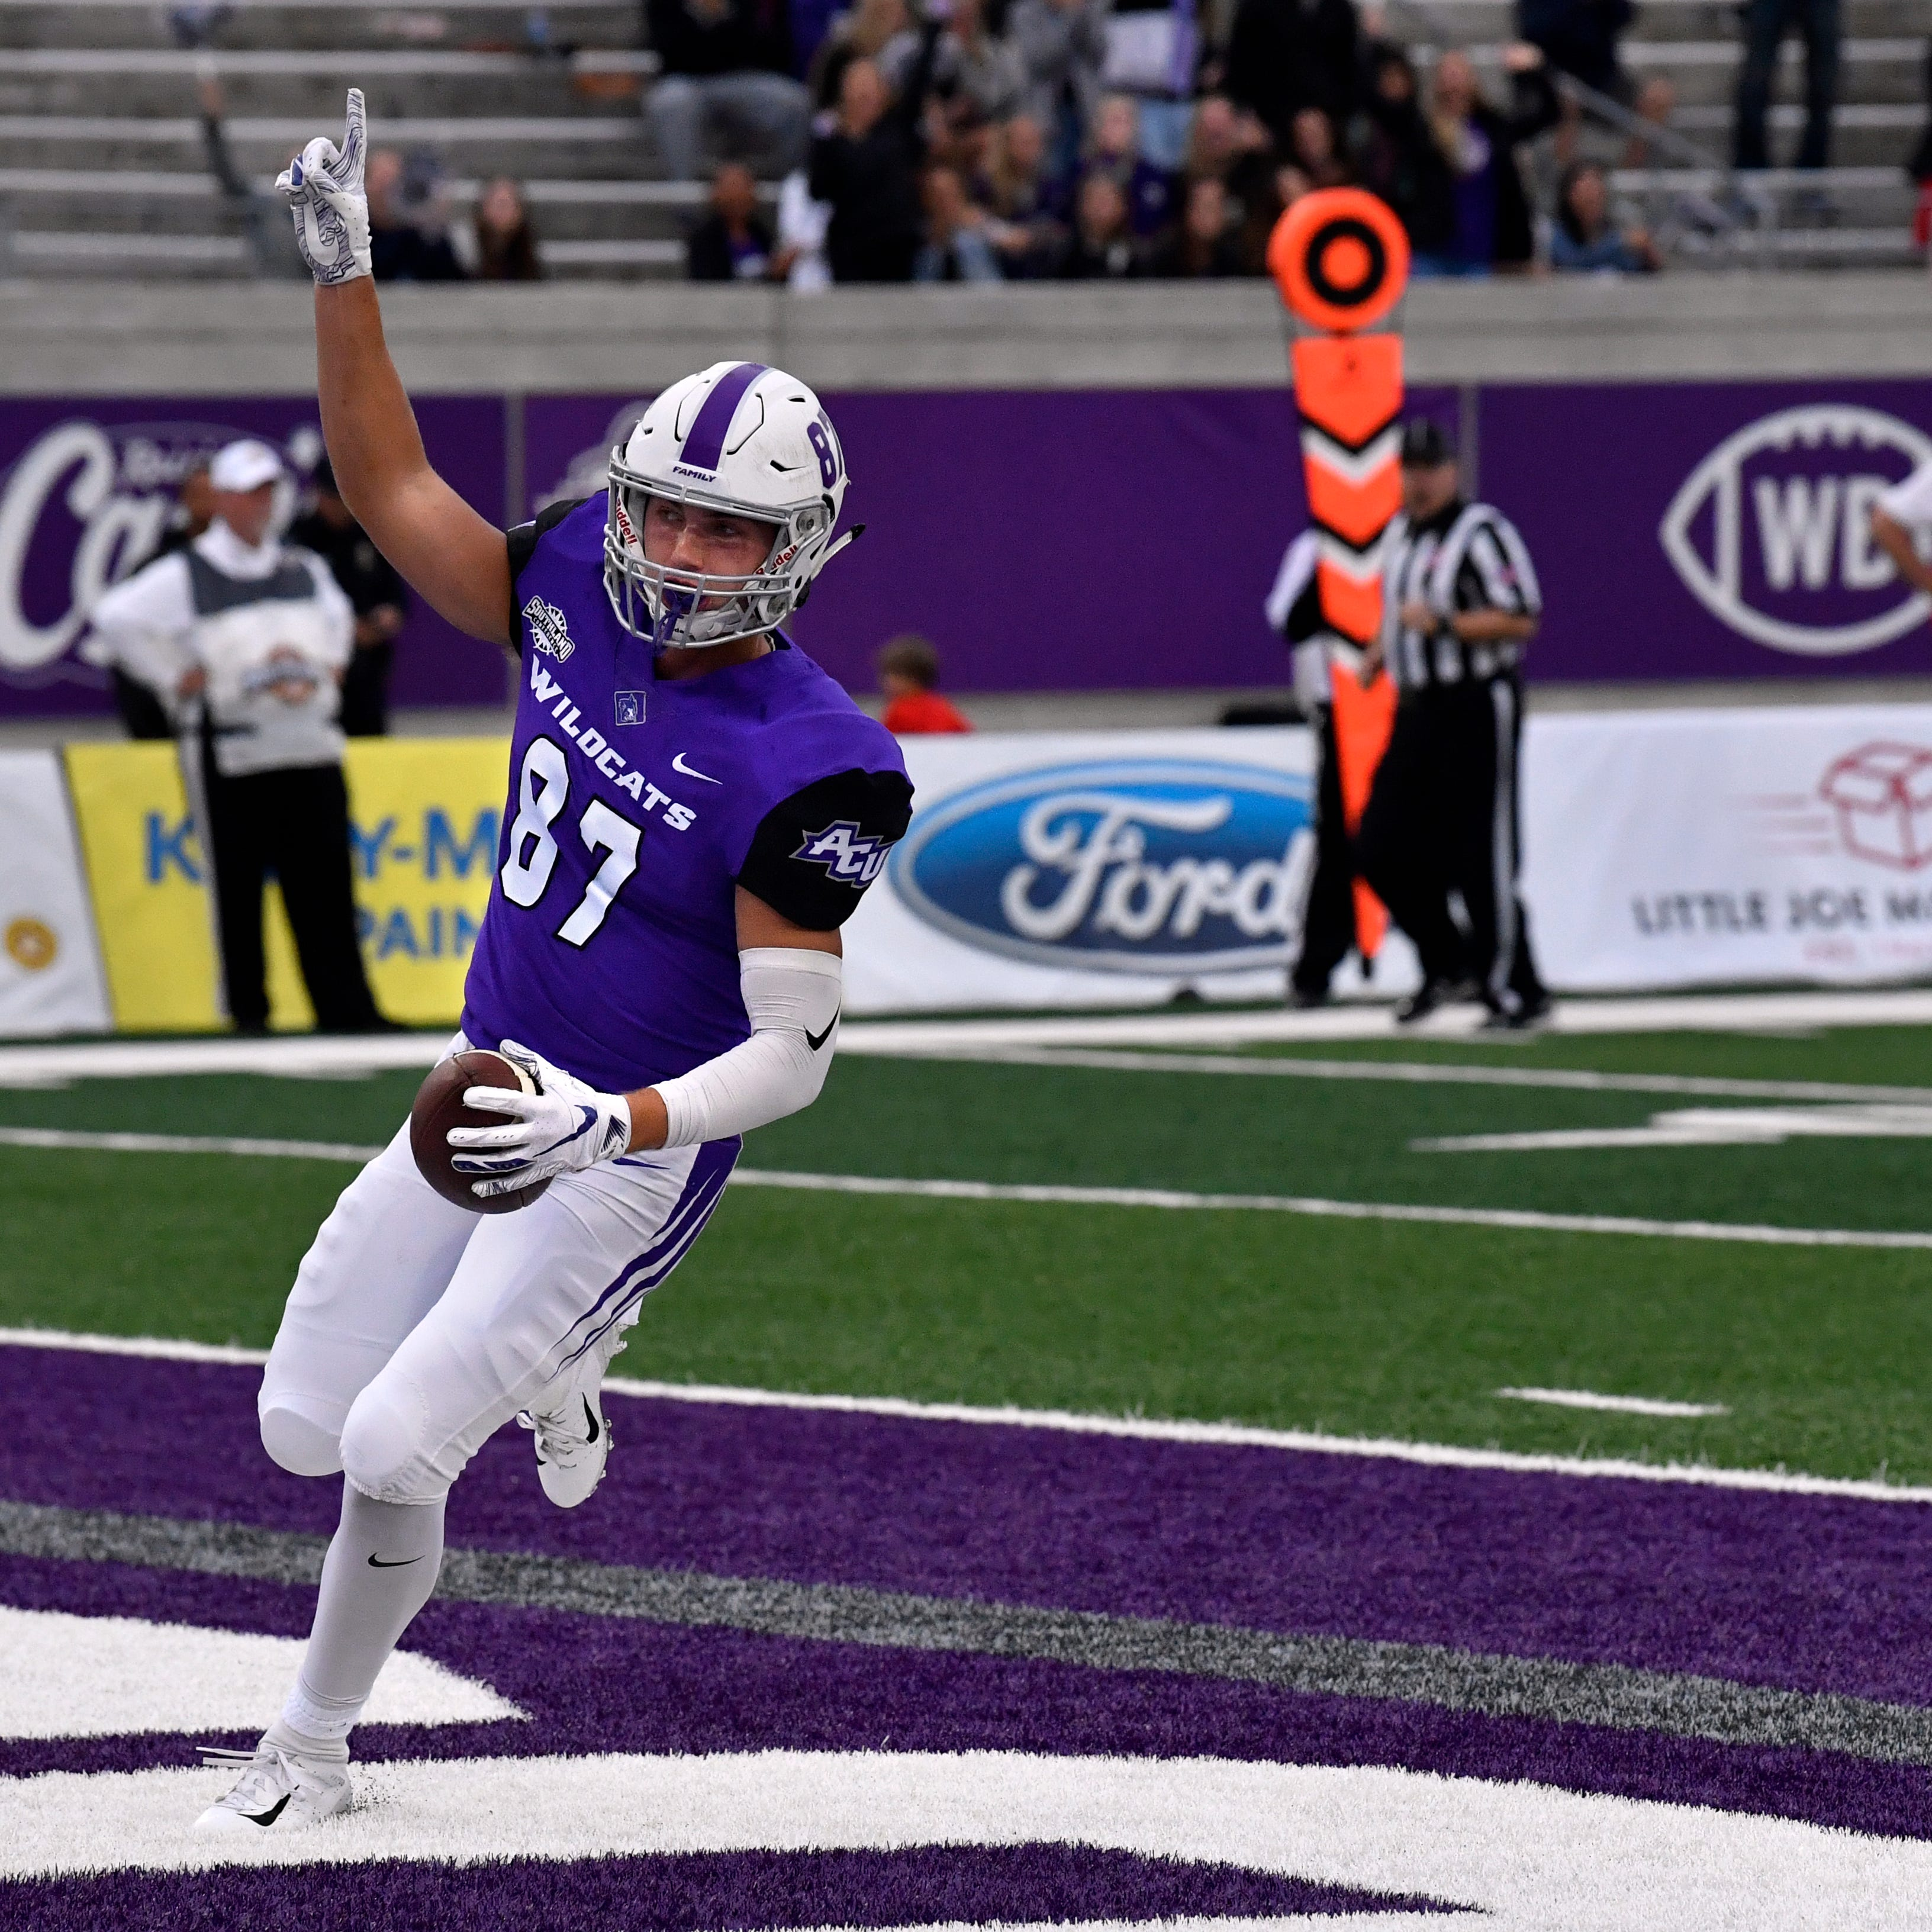 Abilene Christian football upsets No. 11 Nicholls for 1st win over ranked team since 2014